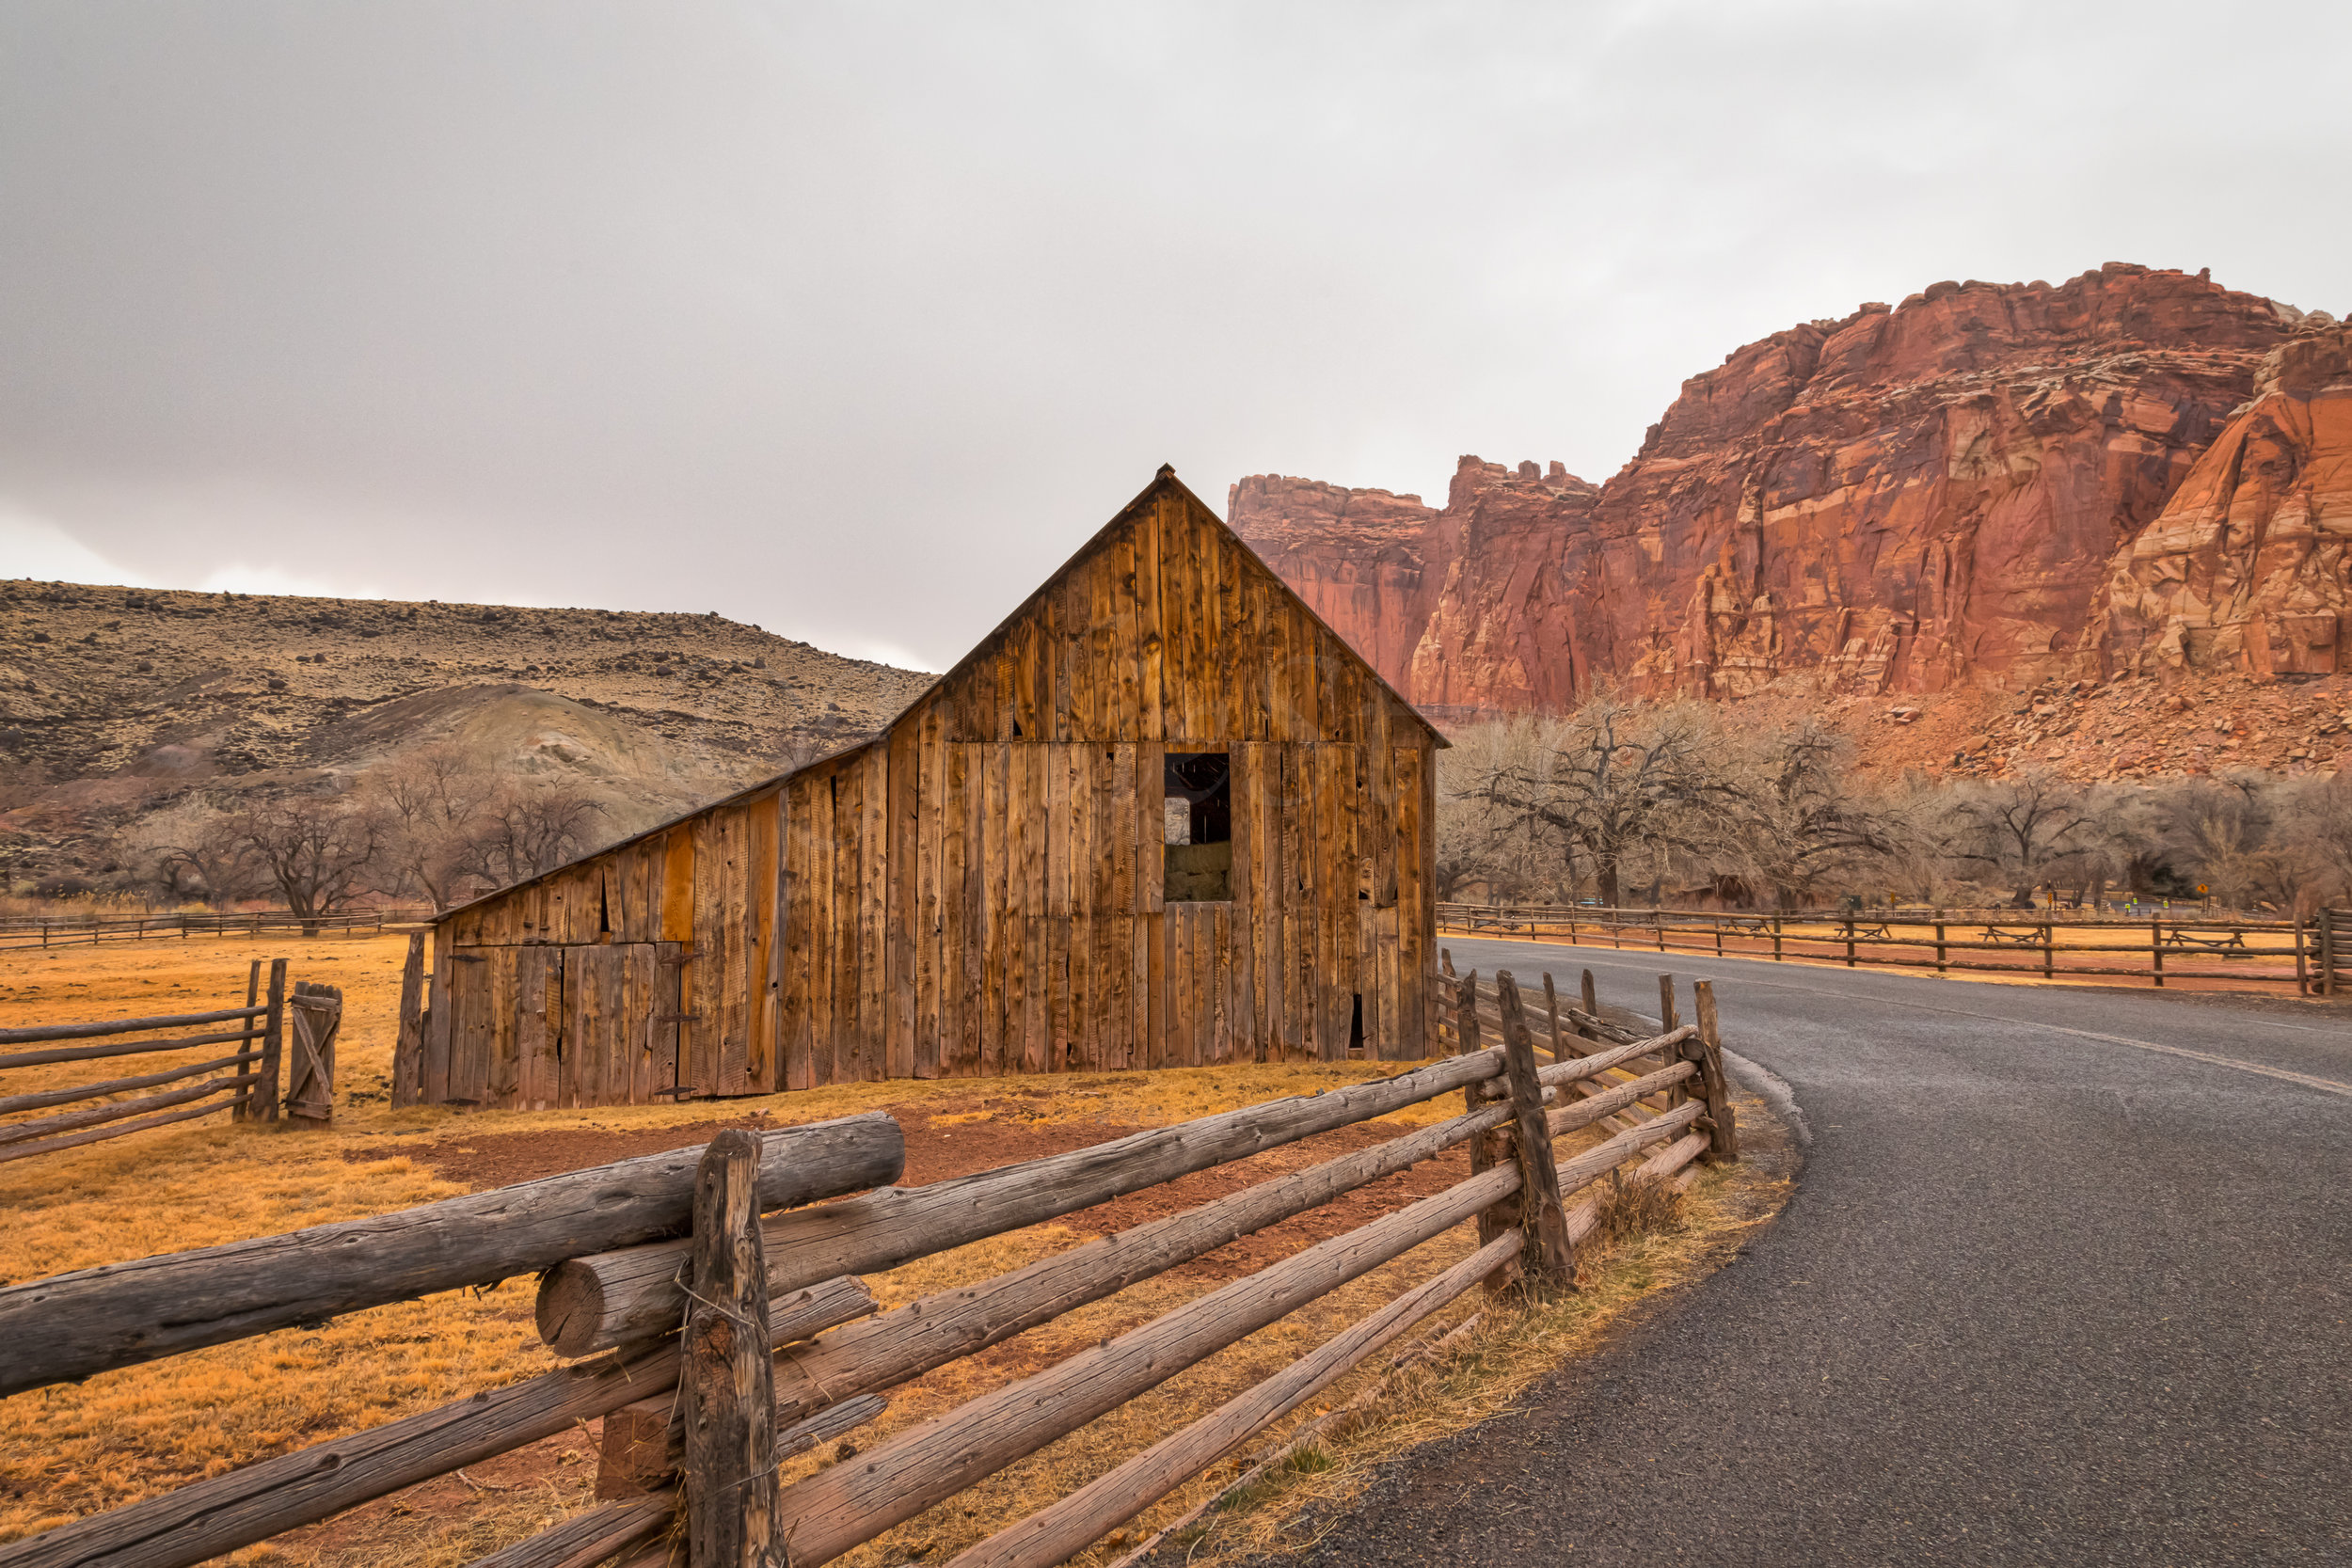 Capitol Reef National Park, Image # 0489